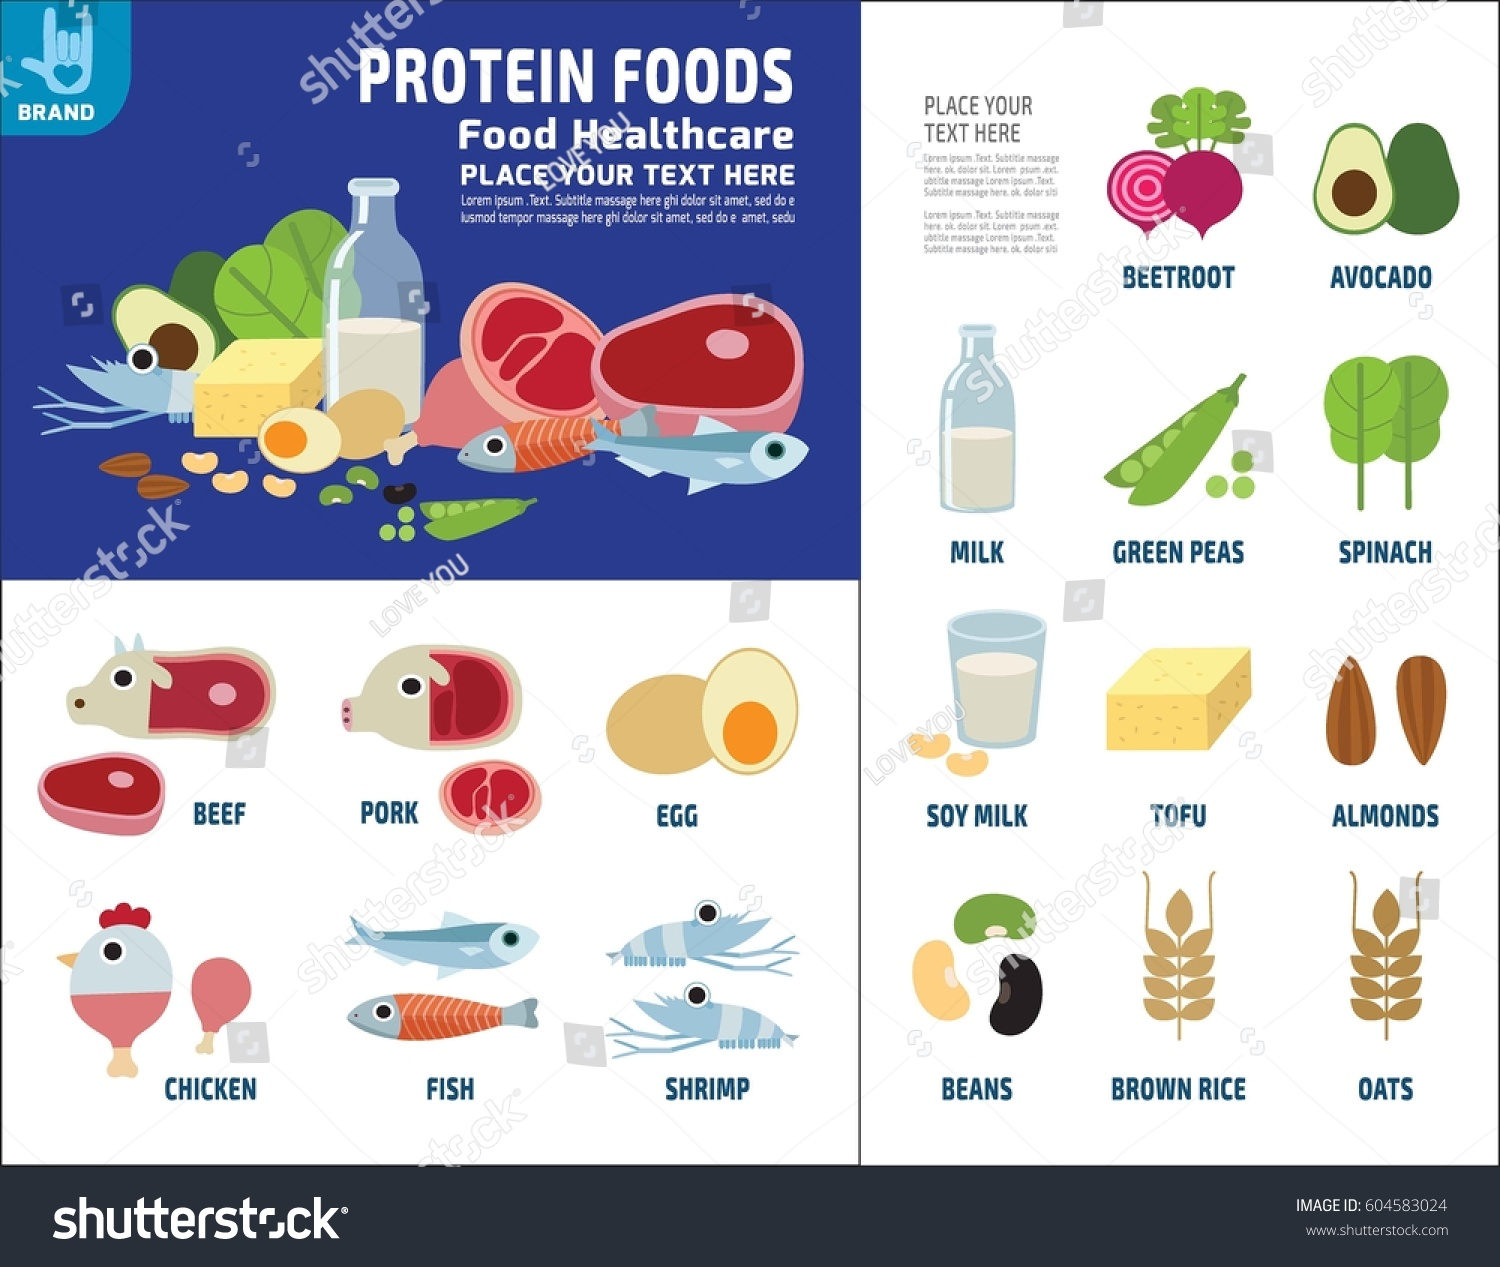 Protein is ... Protein for a set of muscle mass: reviews 92